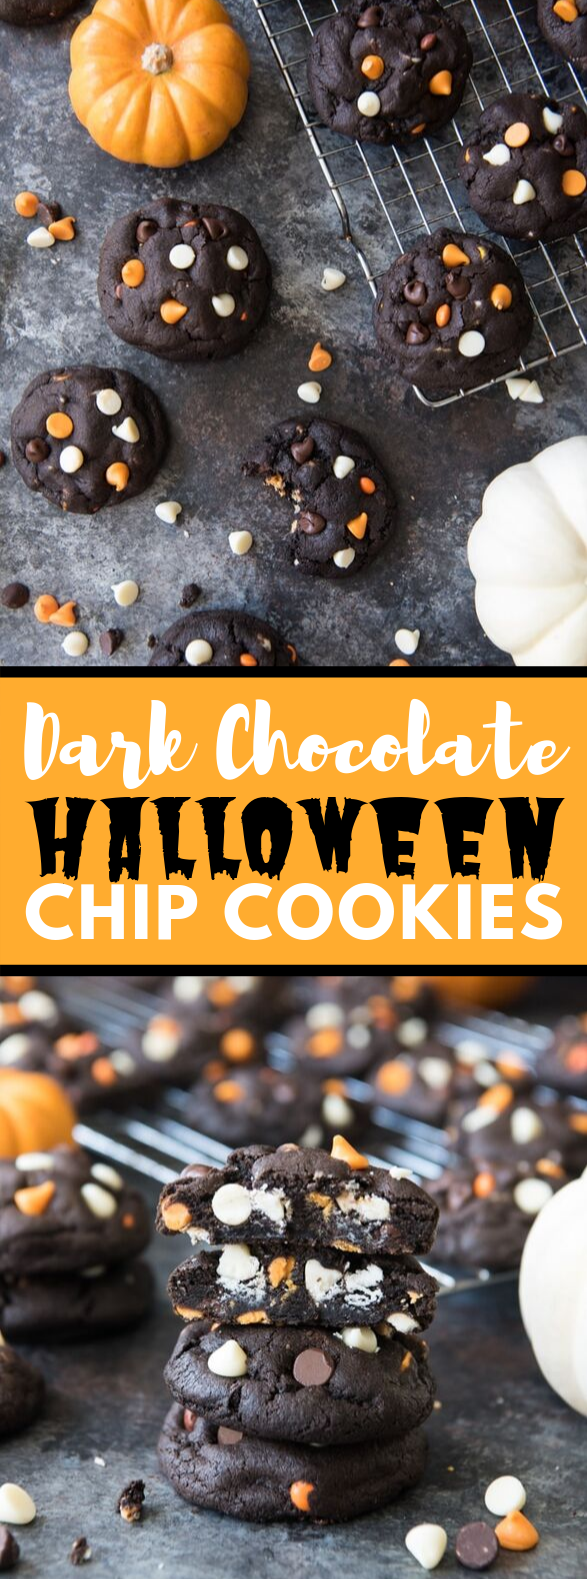 DARK CHOCOLATE HALLOWEEN CHIP COOKIES #desserts #delicioustreat